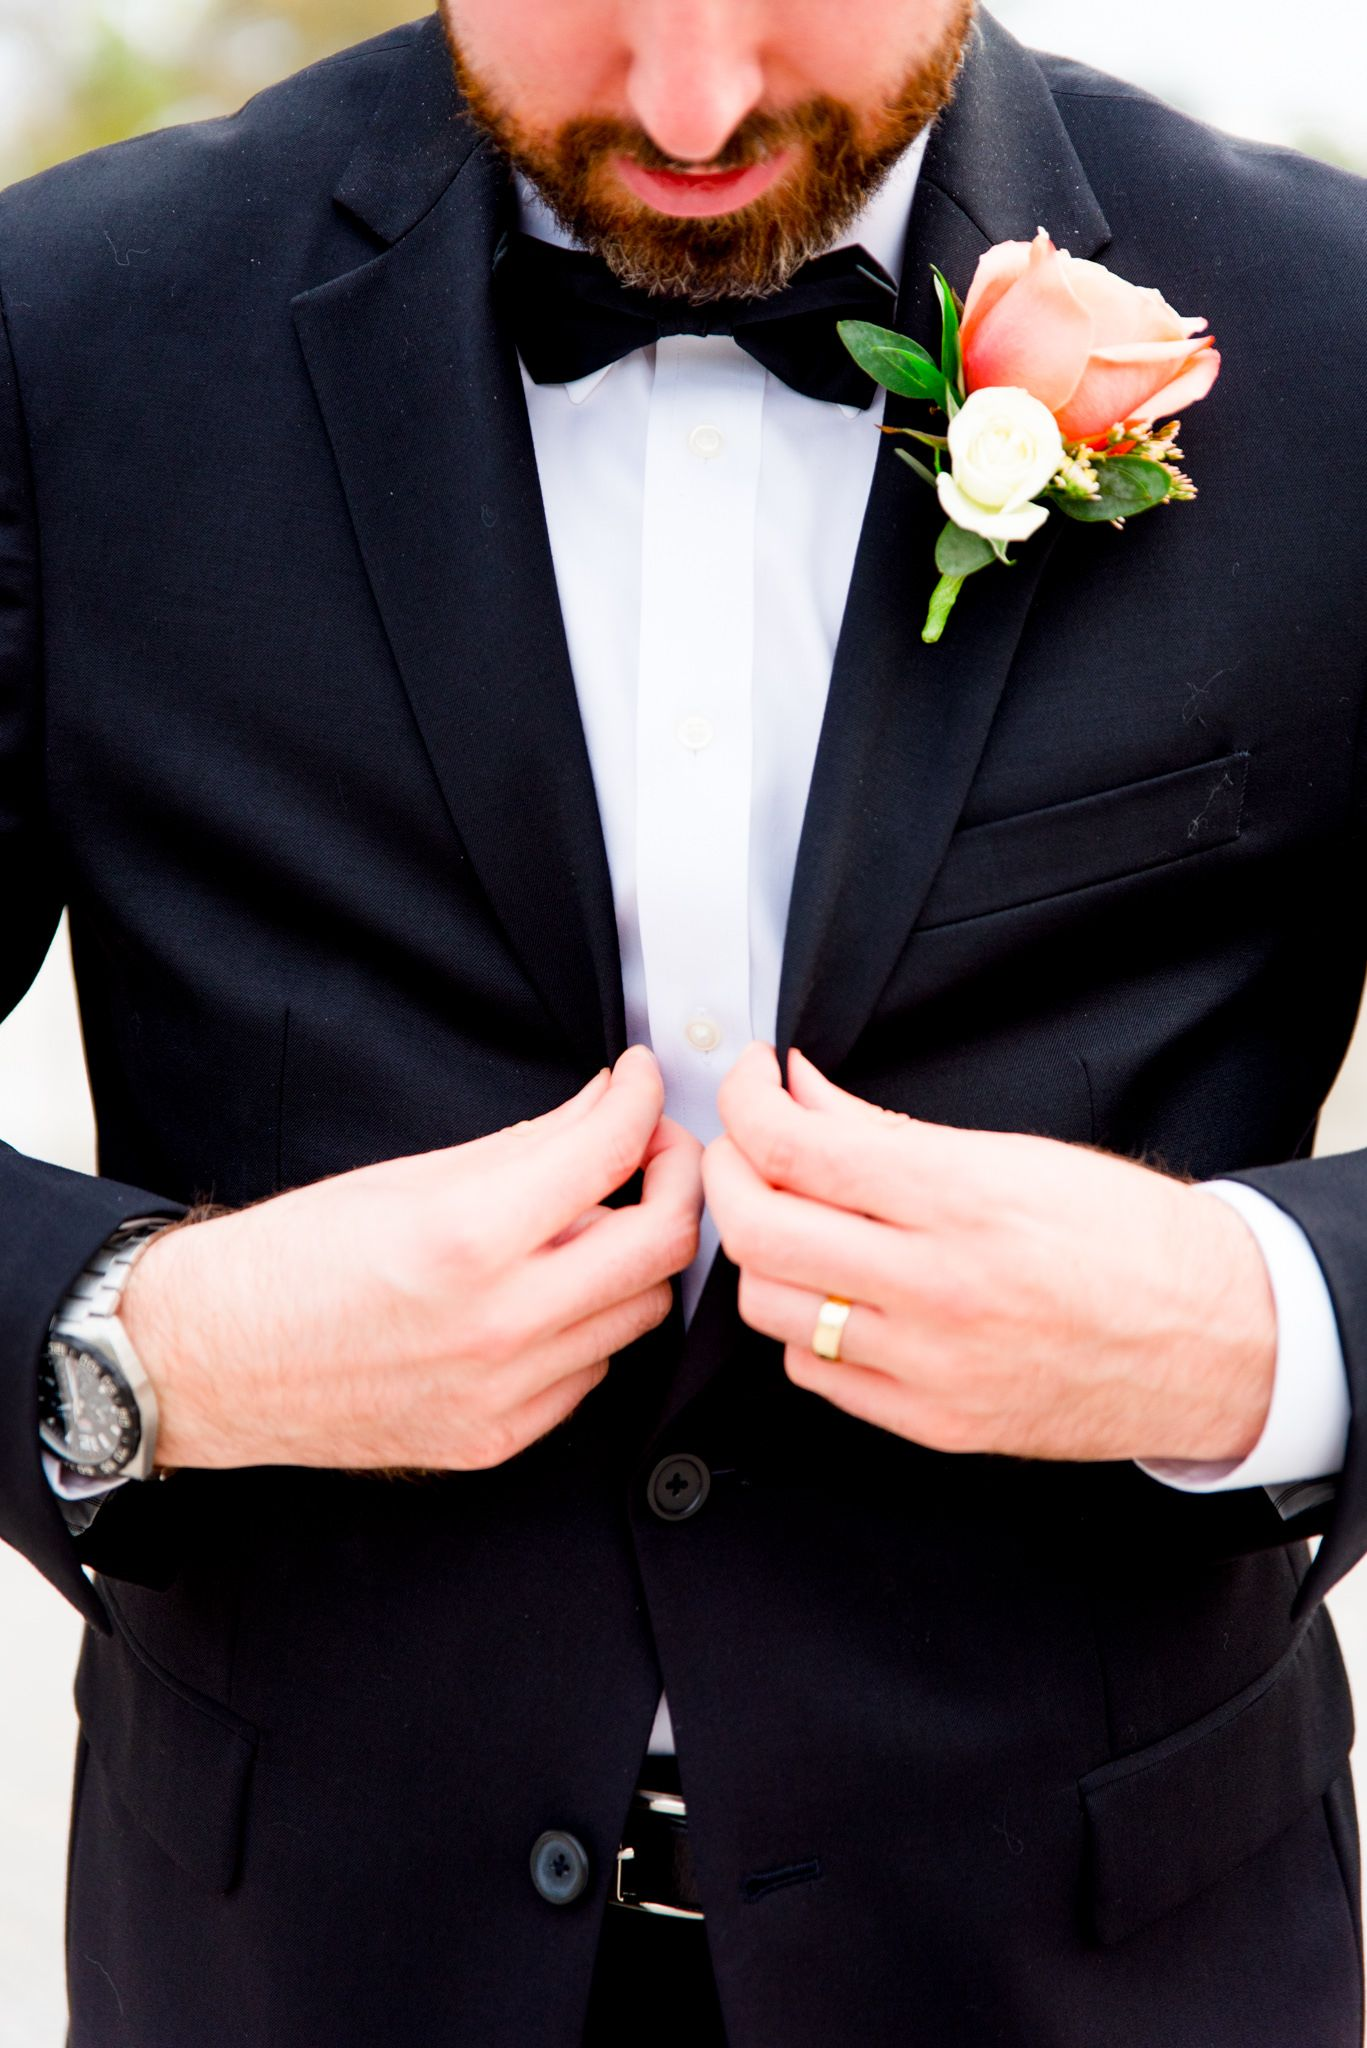 groom with beard buttoning his black suit, showing coral rose boutonniere